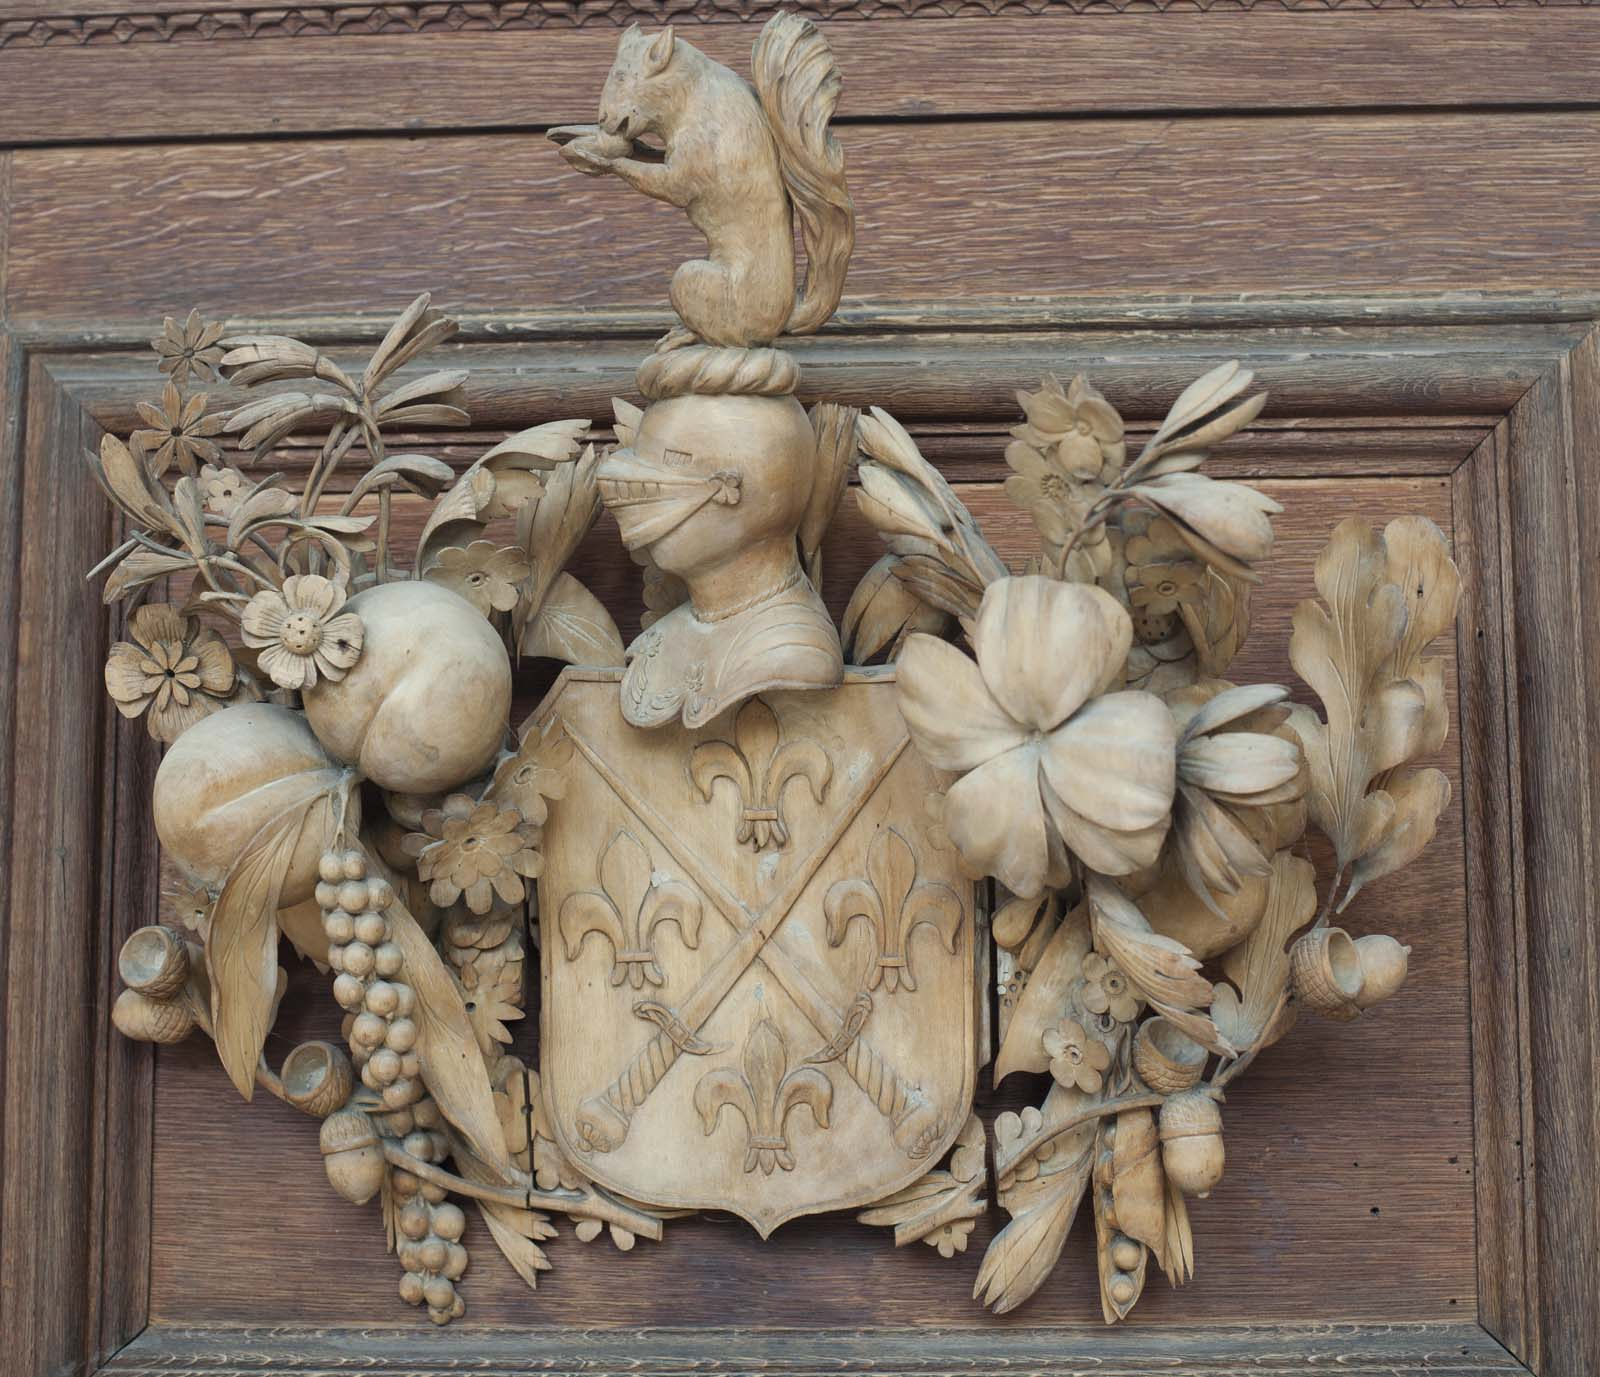 a coat of arms carved in wood with shield, knights helmet, foliage and a squirrel